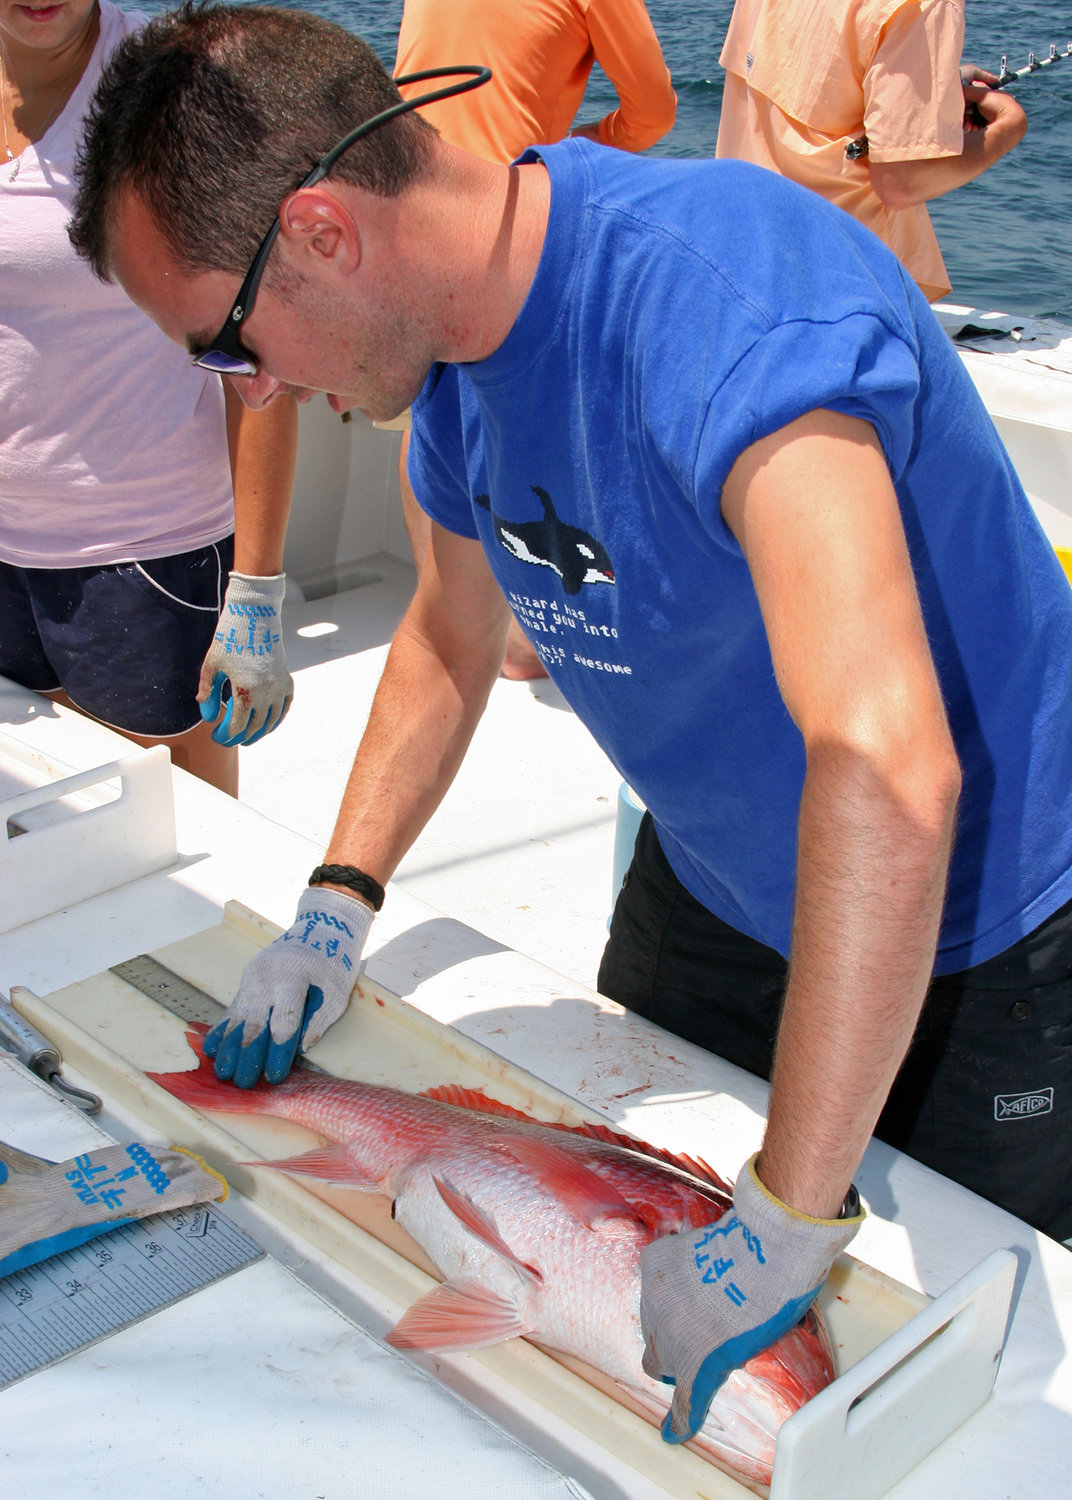 Alabama has been tagging red snapper as part of its research program for many years.